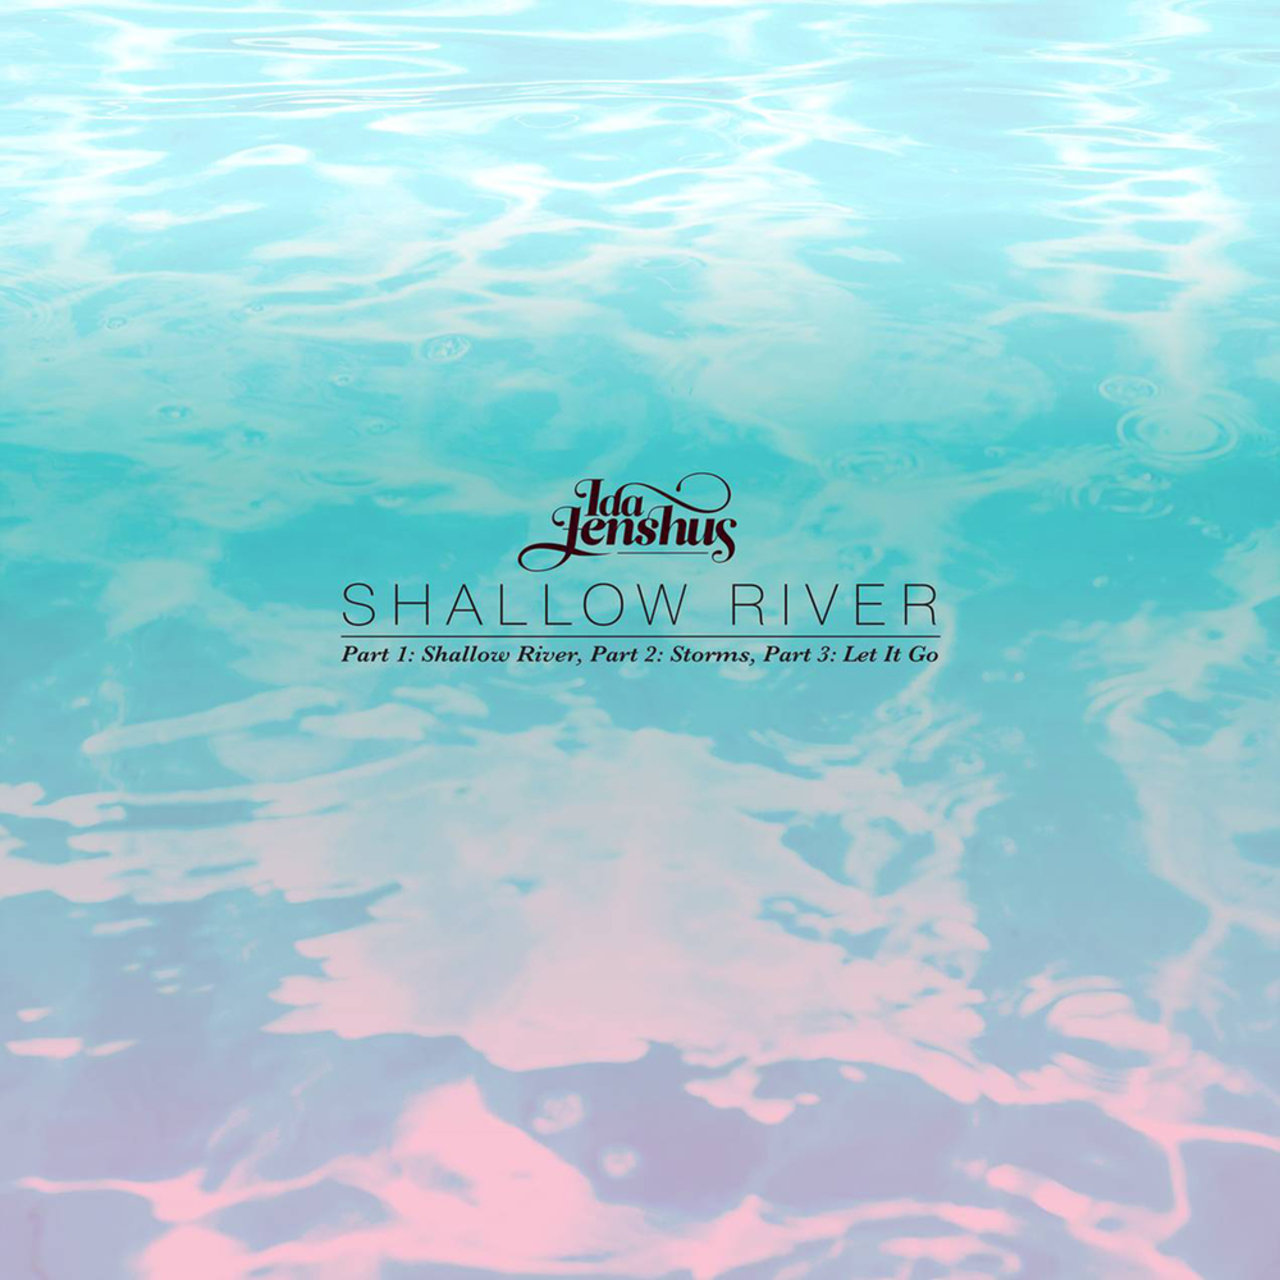 Shallow River (Pt 1: Shallow River, Pt 2: Storms, Pt 3: Let It Go)